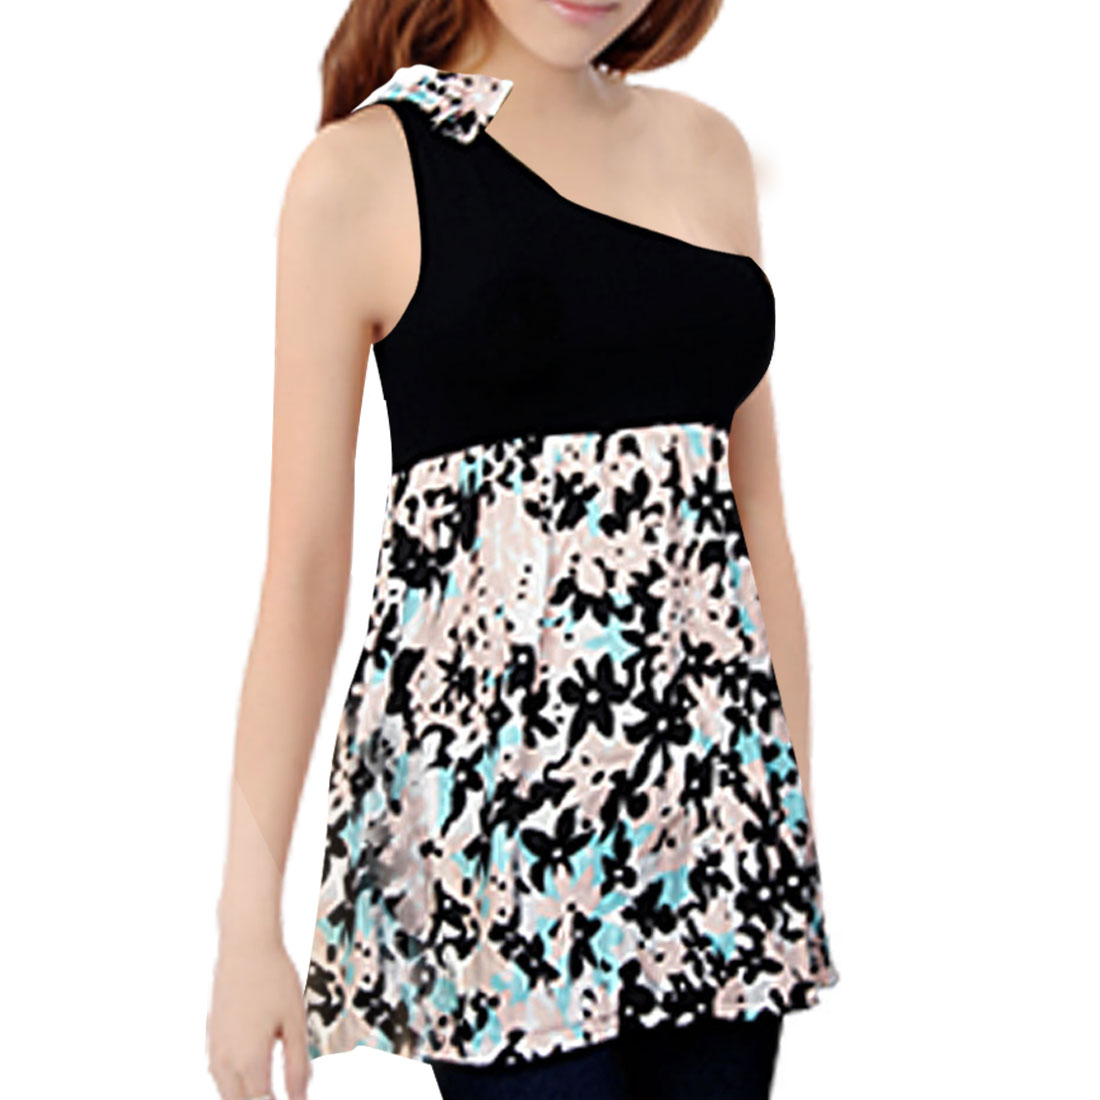 Ladies Floral Printed Elastic Waist One Shoulder Shirt Black XS